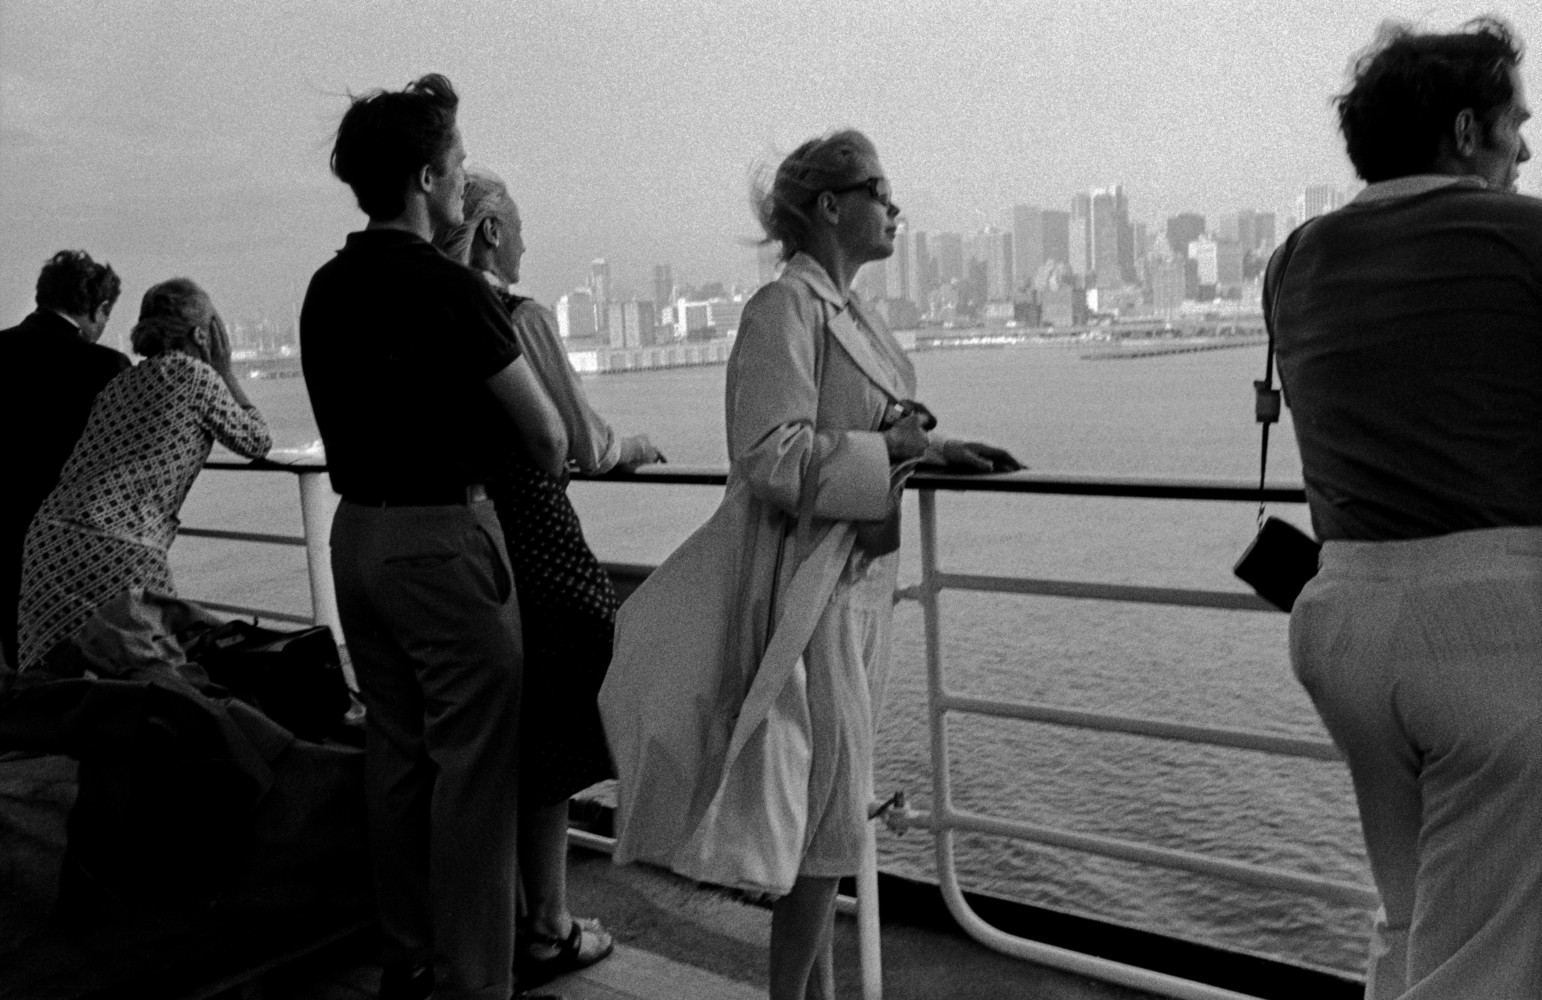 All Aboard the QE2 • Magnum Photos